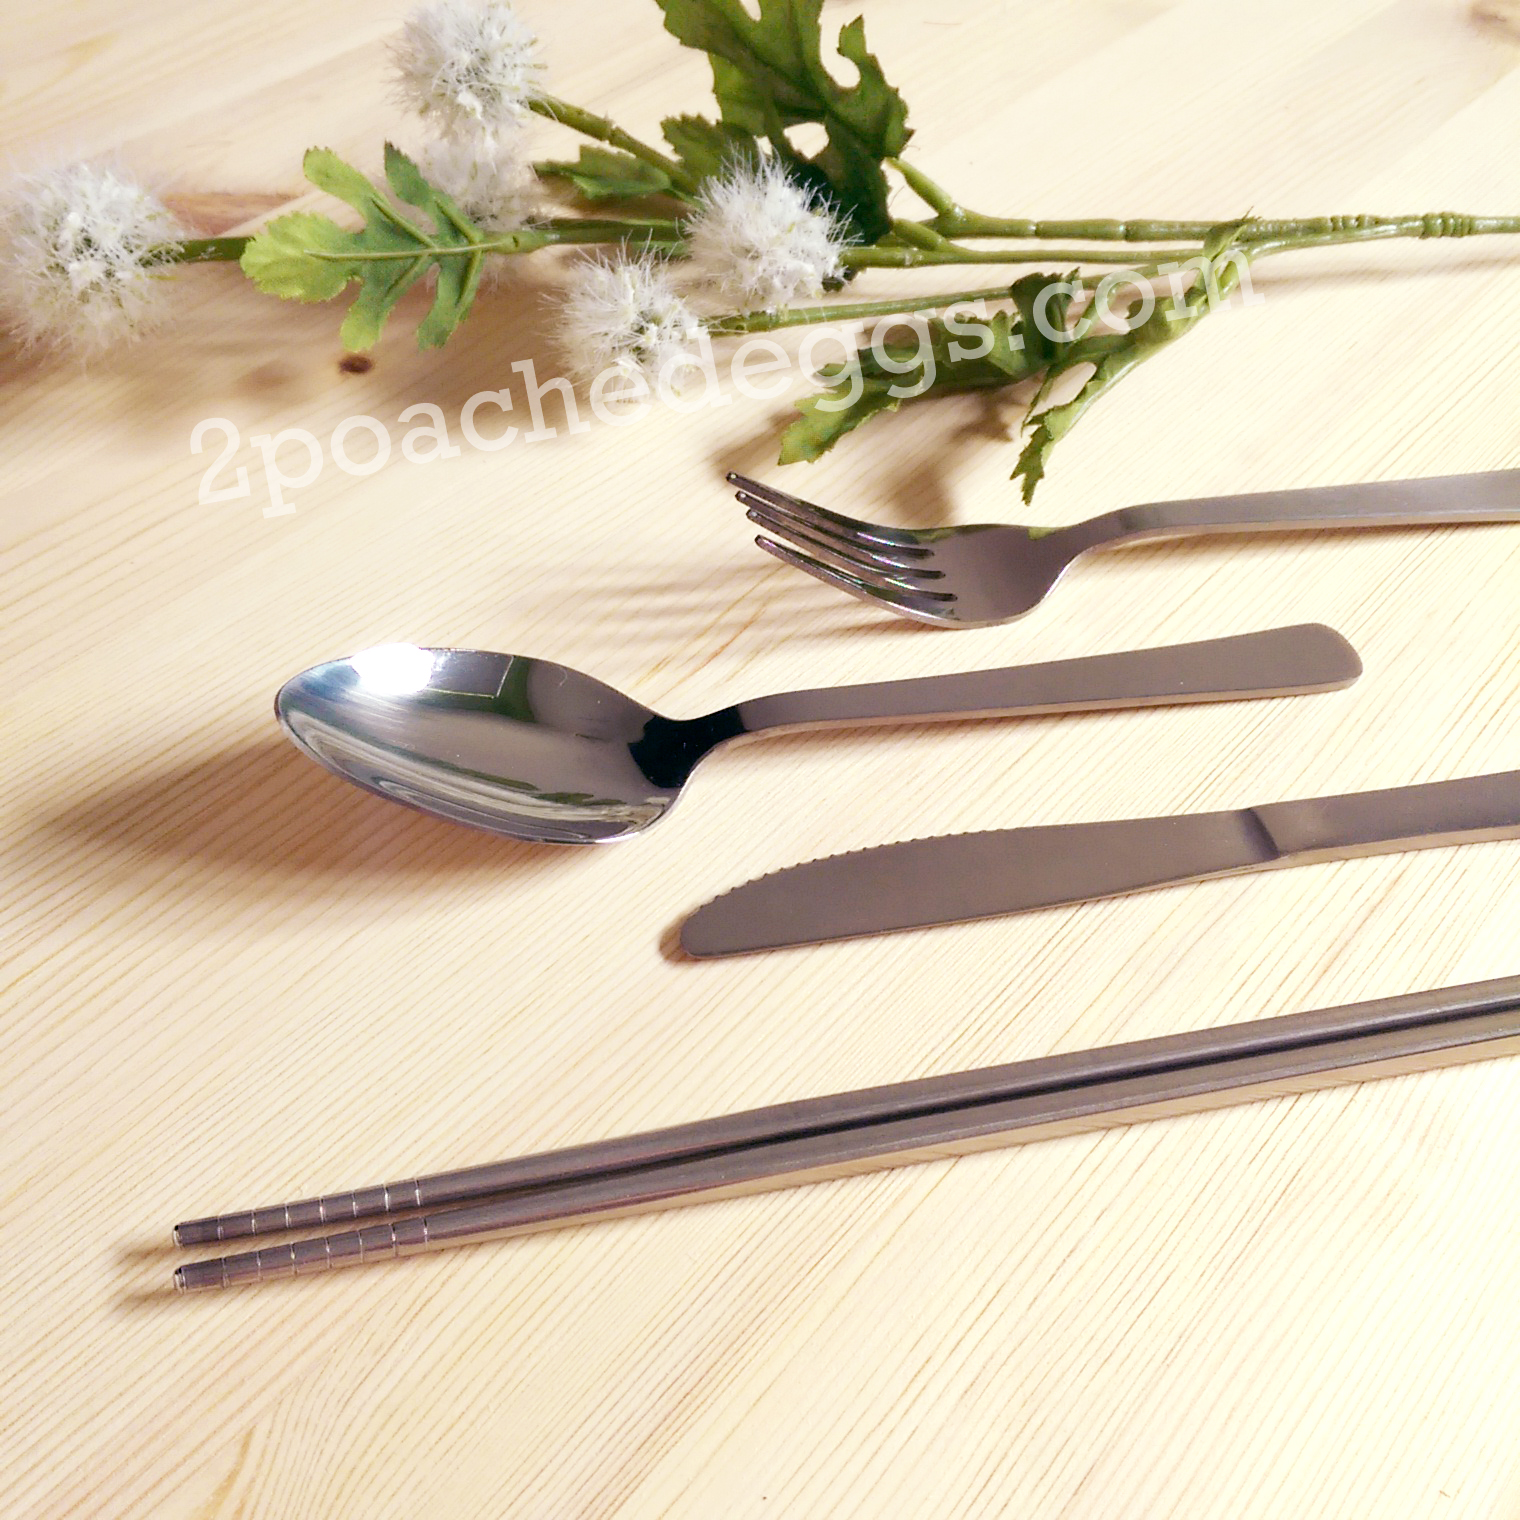 Spoon | Fork | Knife | Chopsticks